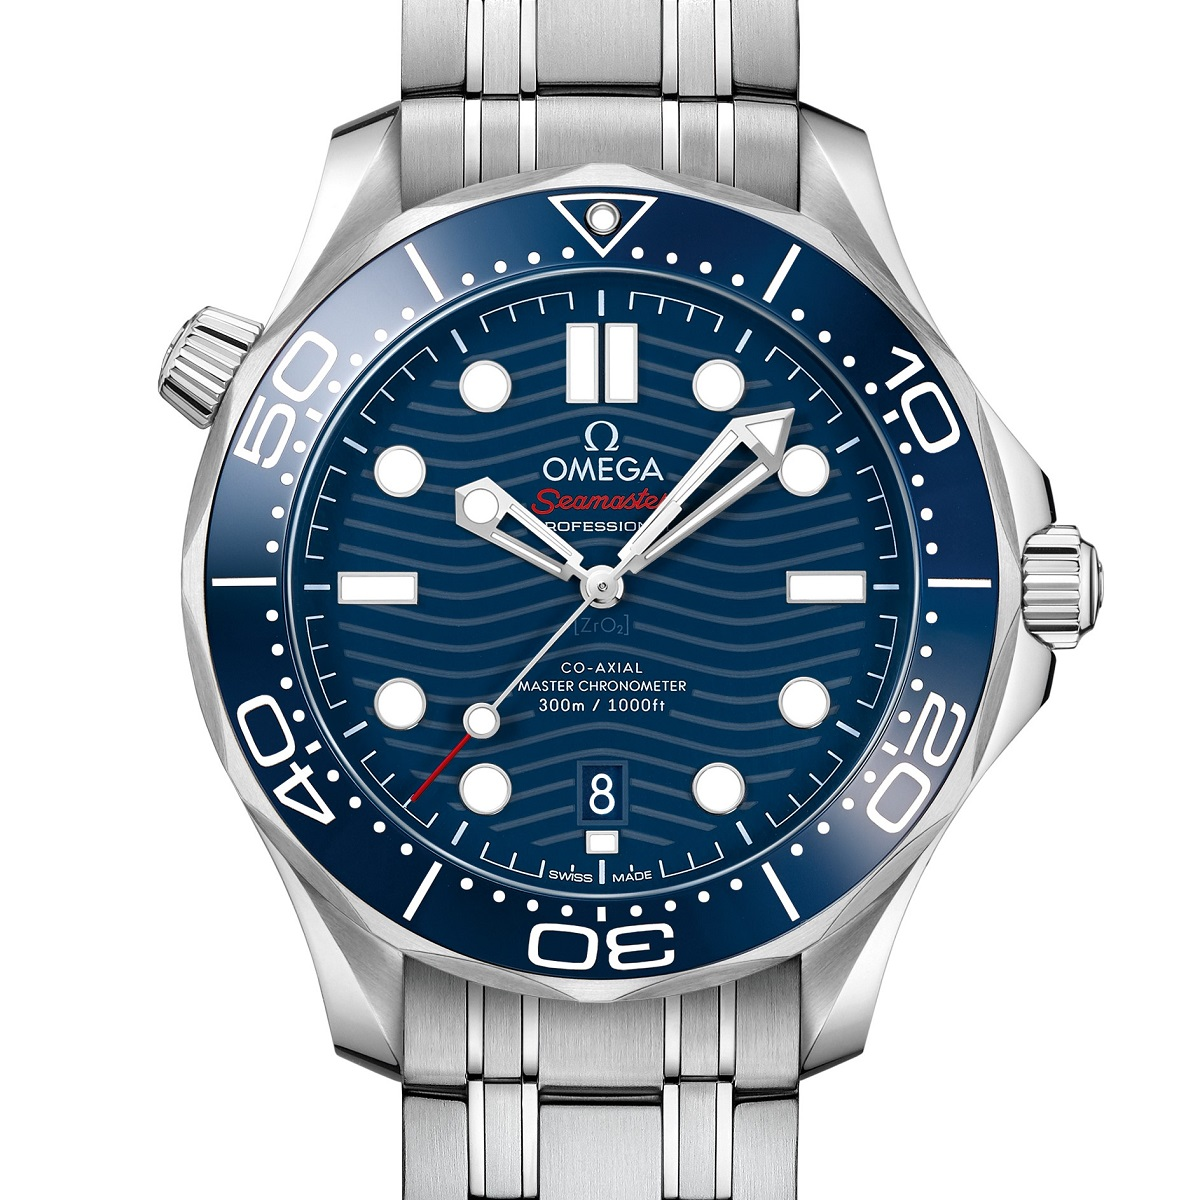 Omega Seamaster Professional Diver 300M 42mm Watch First Look